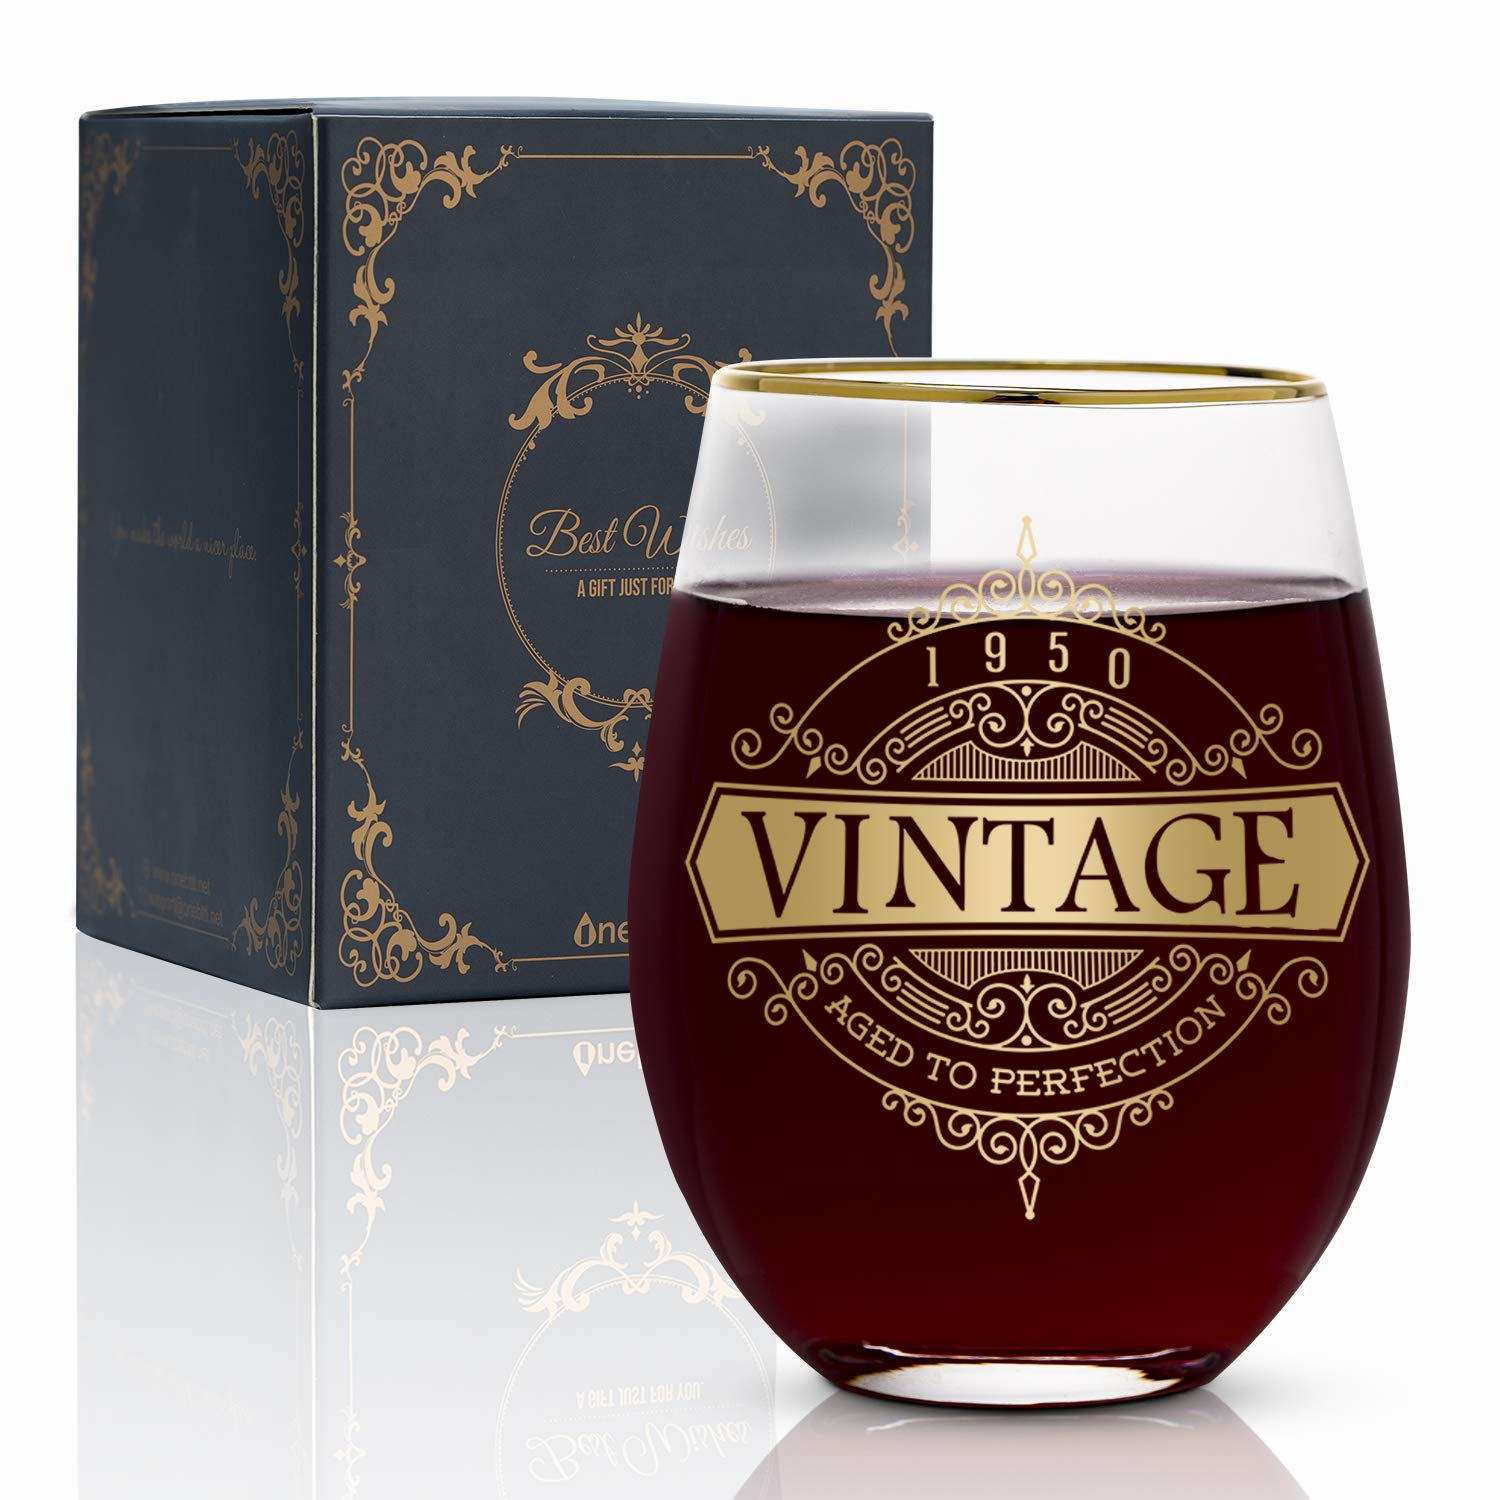 Onebttl 70th Vintage Birthday for Women and Men-17oz Wine Glass-Aged to Perfection 1950 Birthday Decorations-70th Anniversary Ideas for Her, Mom, Dad, Husband, Wife, Grandma, Grandpa